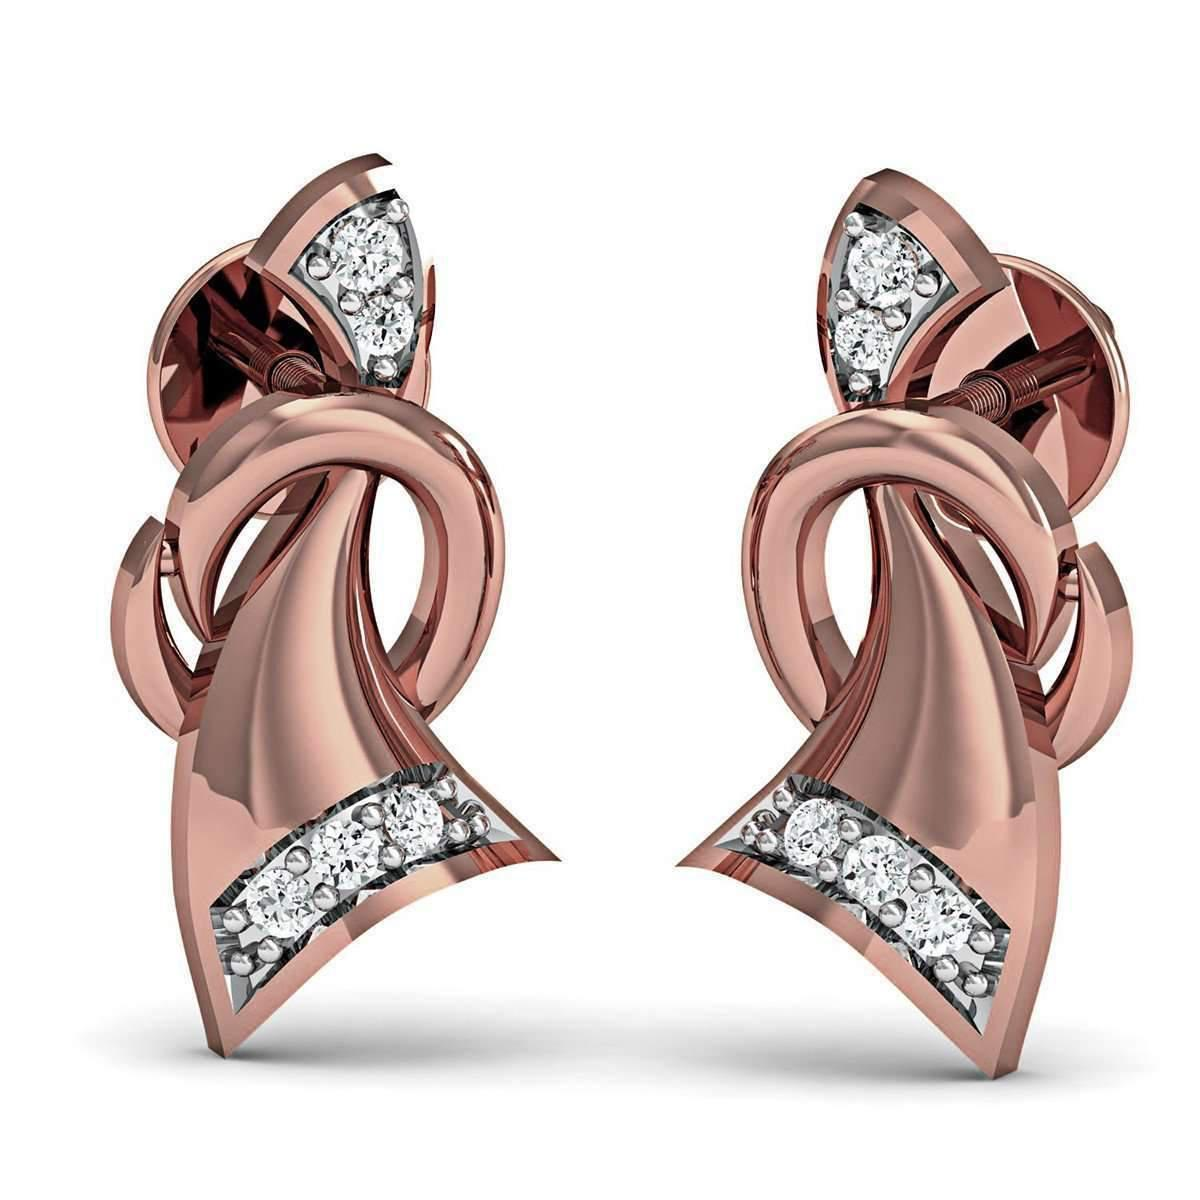 Diamoire Jewels Hand-carved 14kt Rose Gold and Diamond Pave Earrings J5m8F86r